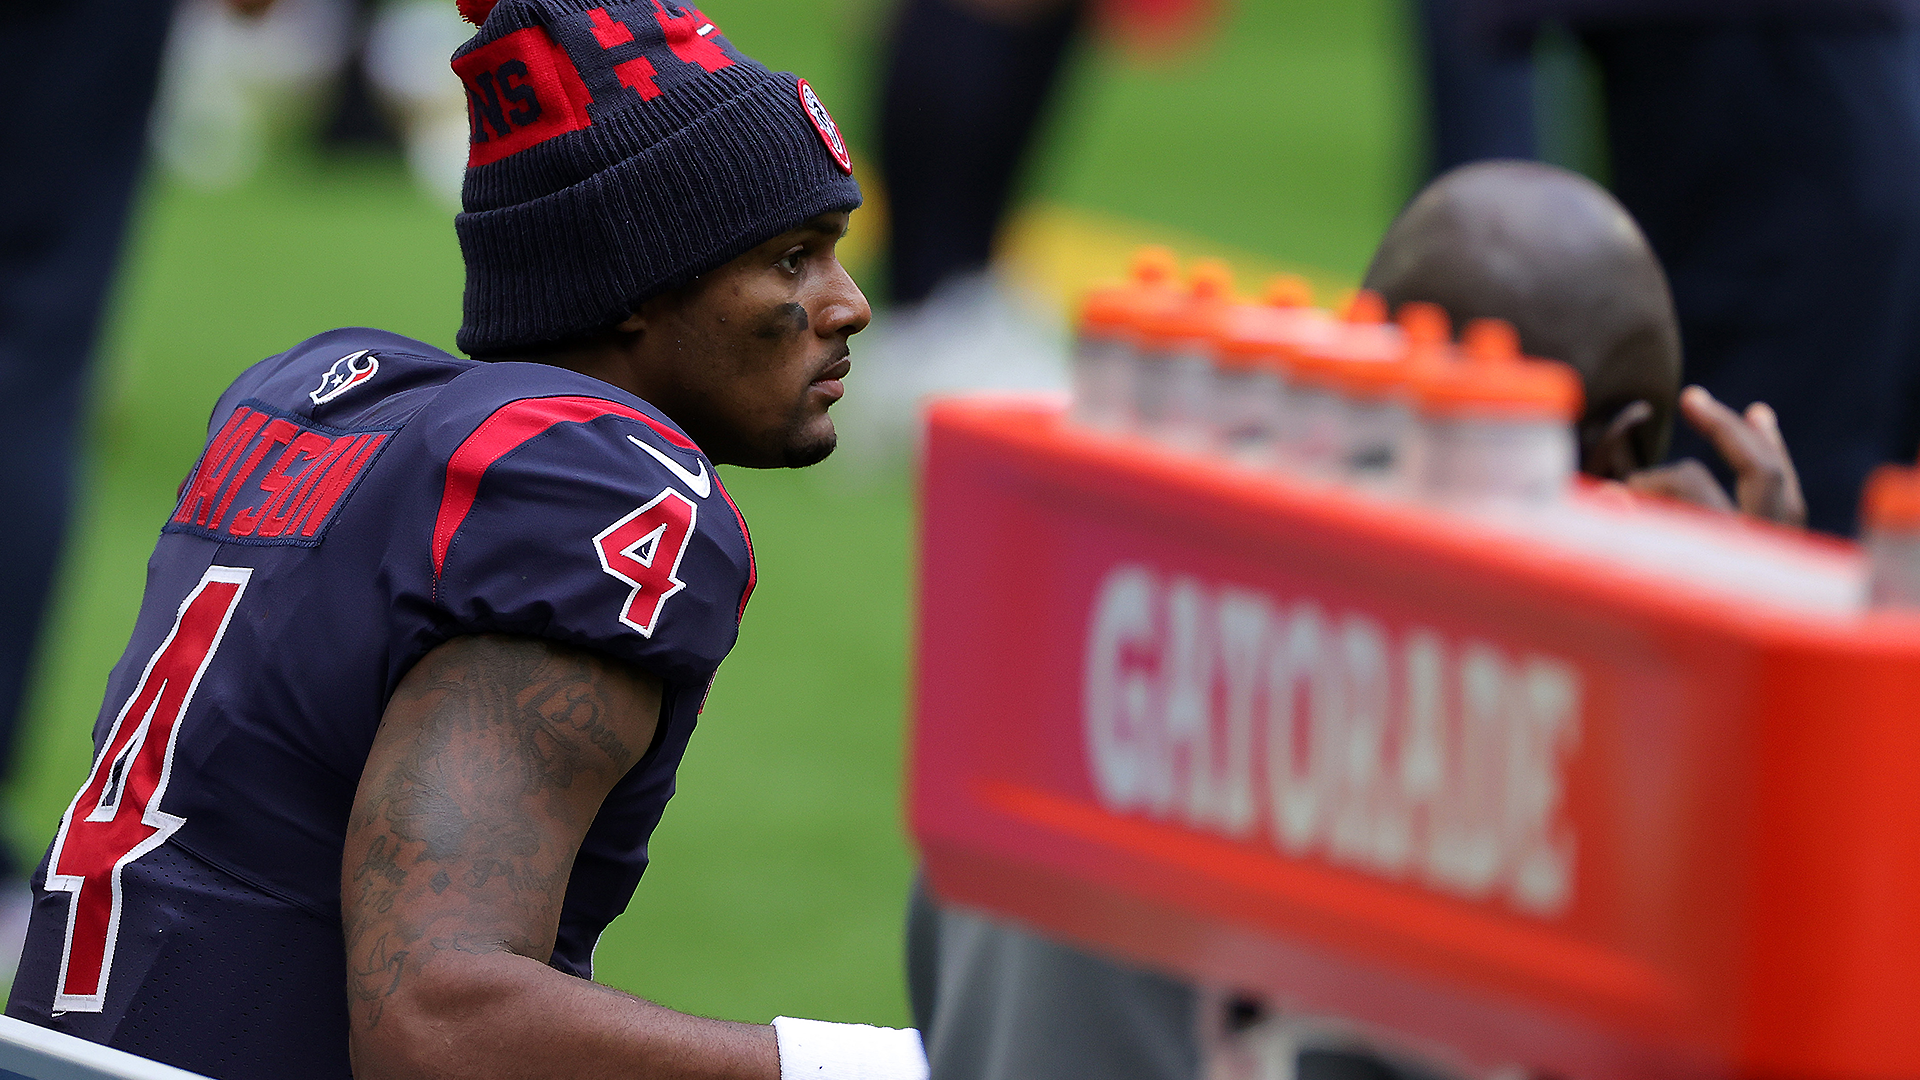 Deshaun Watson trade rumors: Texans' David Culley tied into a pretzel trying to explain QB's standing with team